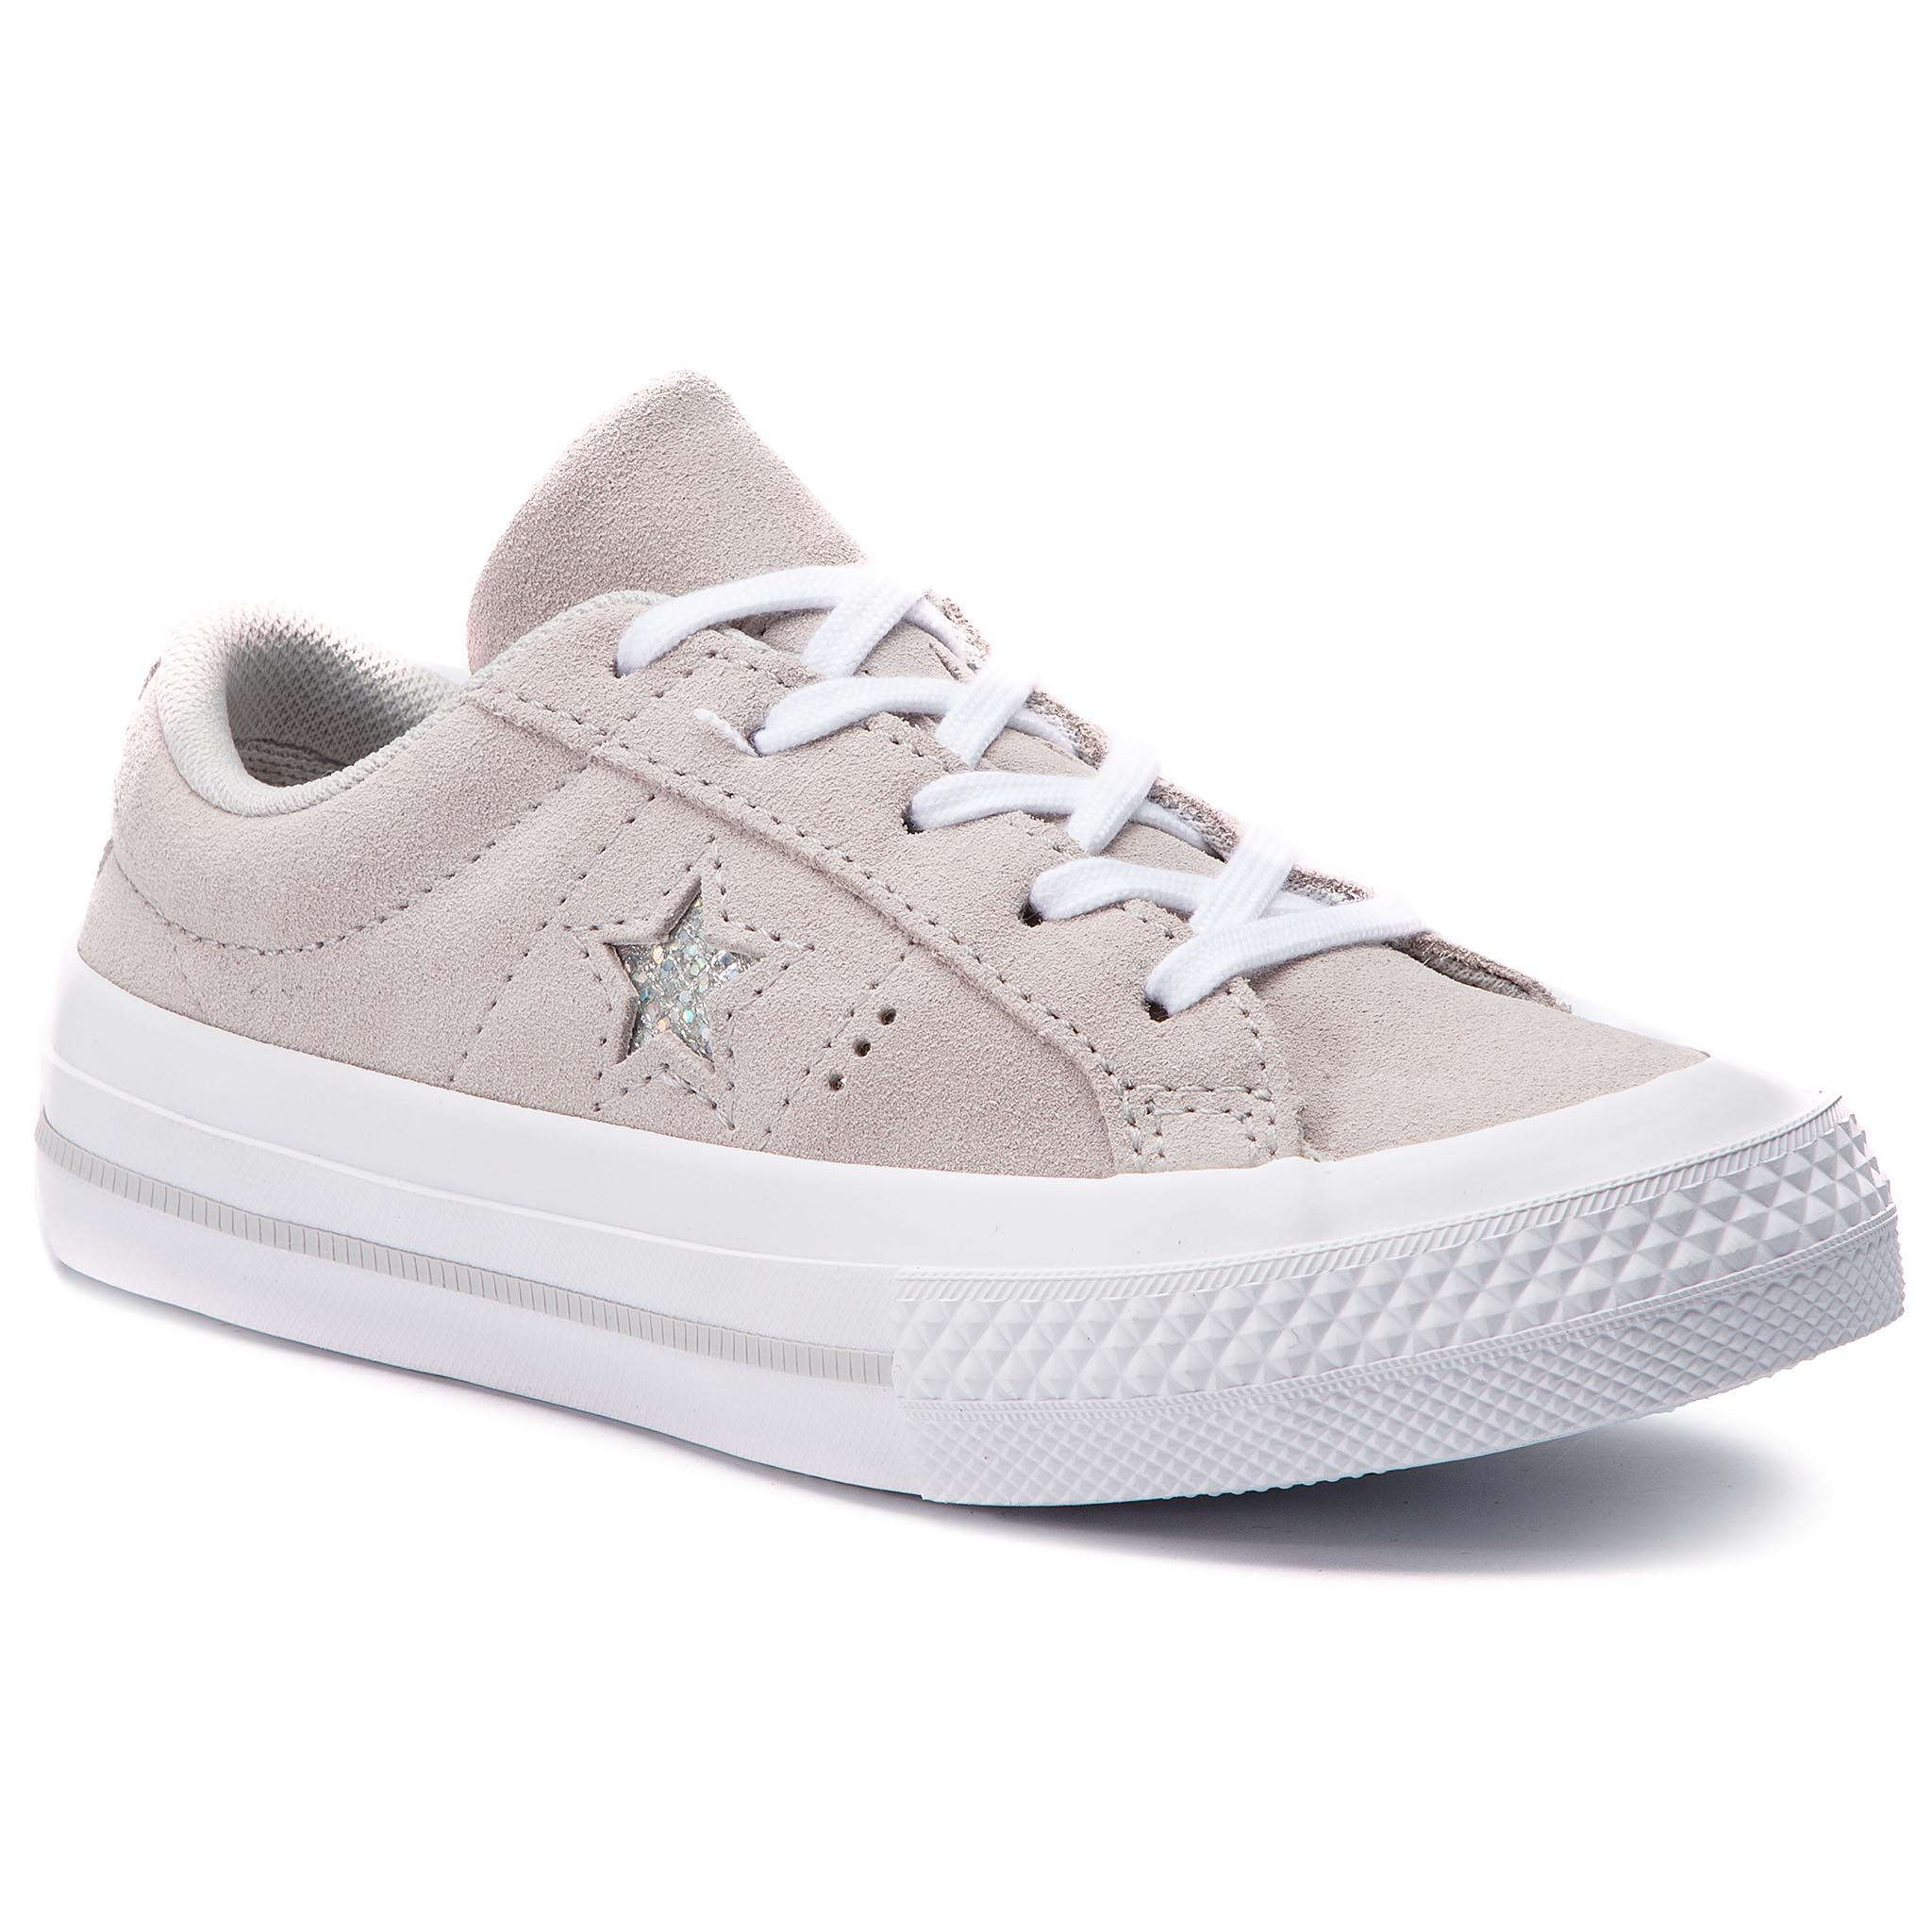 Converse One Star Ox 663589C - Glami.cz eed77381917